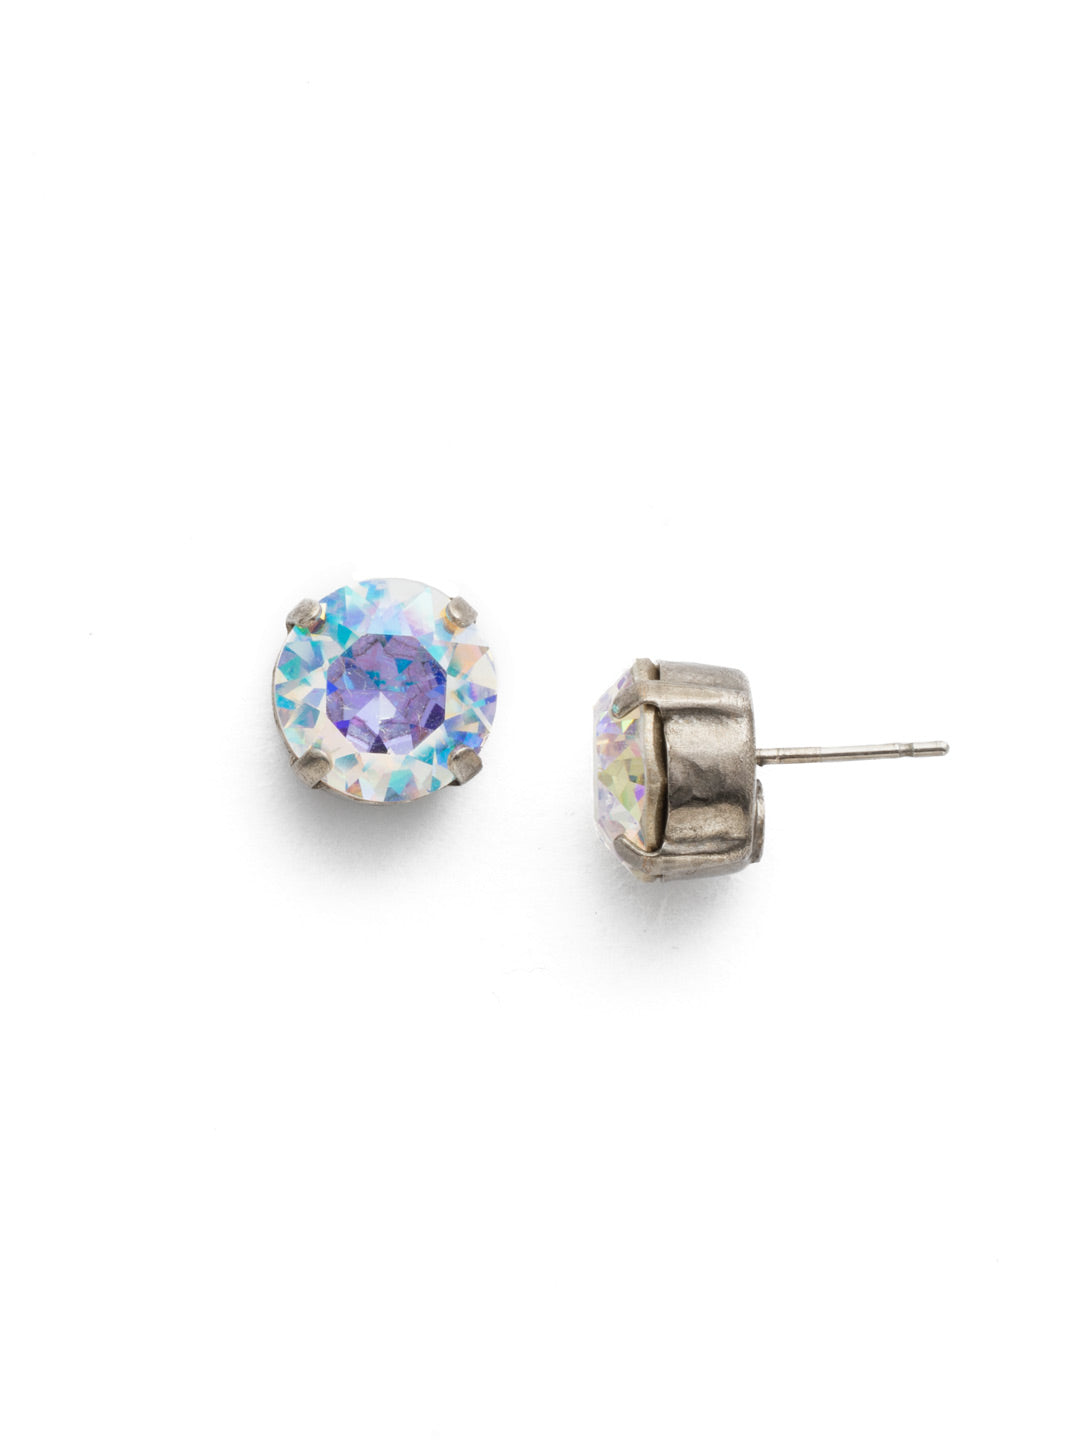 Round Crystal Stud Earrings - ECM14ASCAB